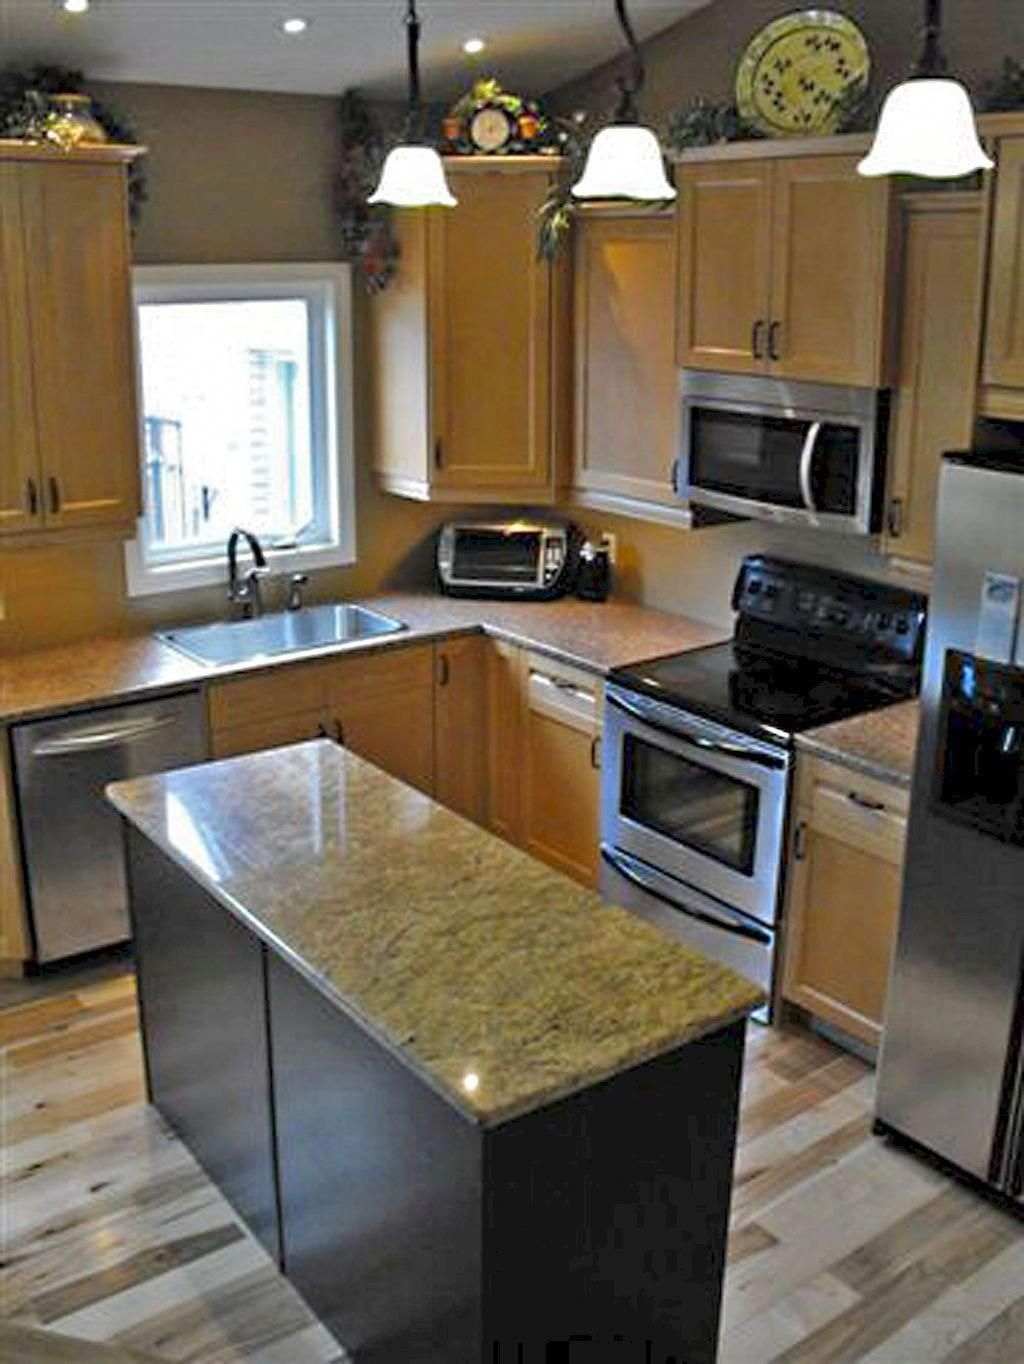 Small Kitchen Design 10x10: Making Arrangements For A Small